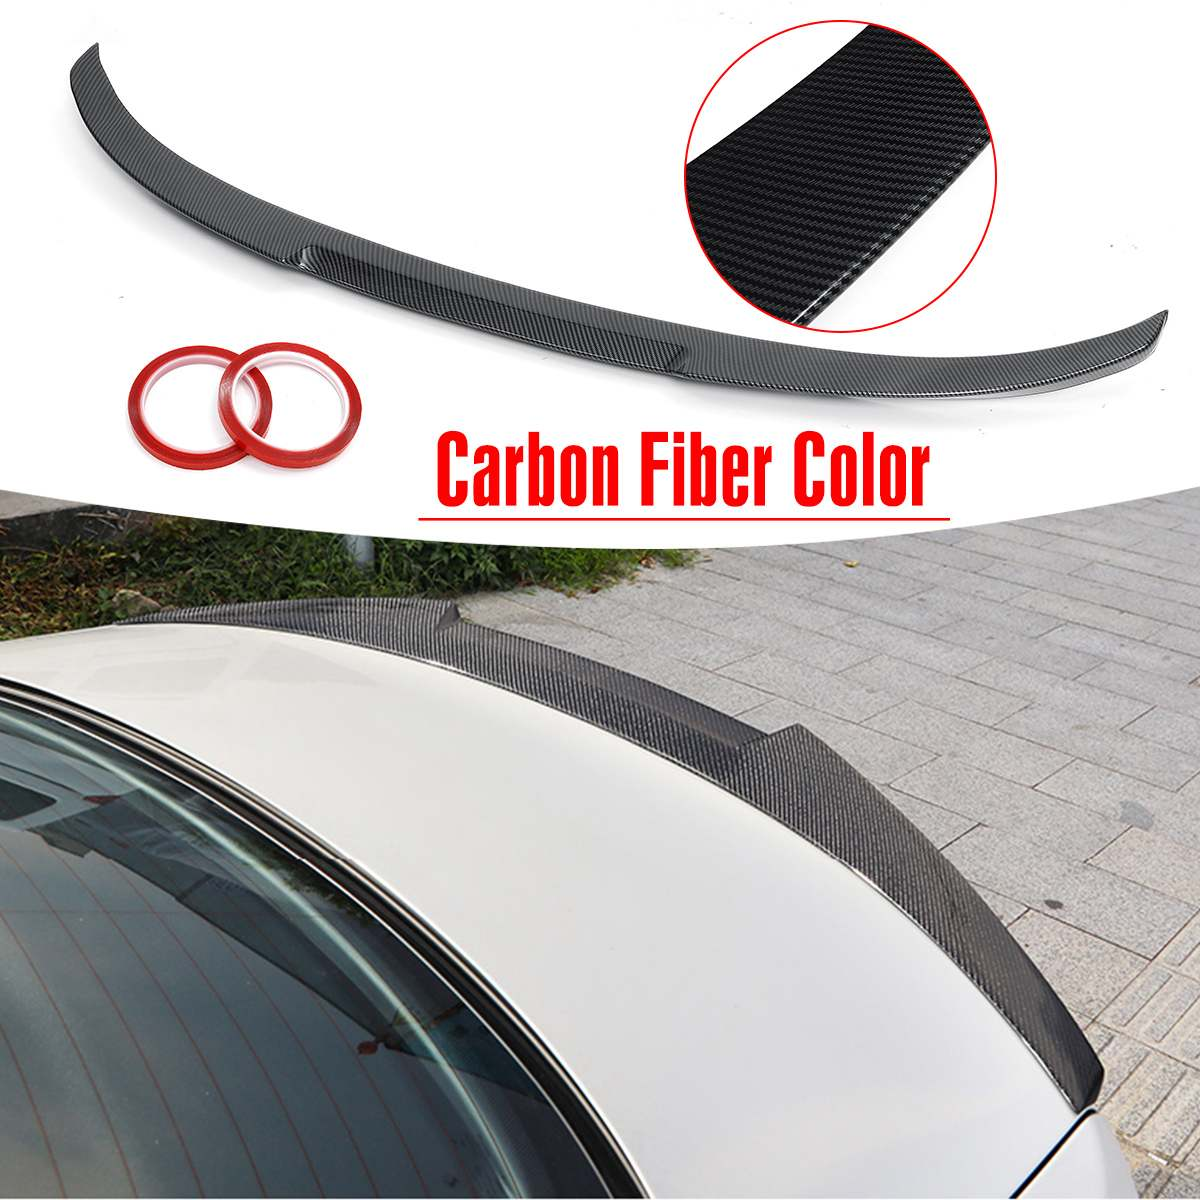 ABS Carbon Fiber Color Trunk Boot Lip Spoiler Tail Wing M4 Style For BMW E90 2006-2011 3 Series Sedan M3 2008-2012 image